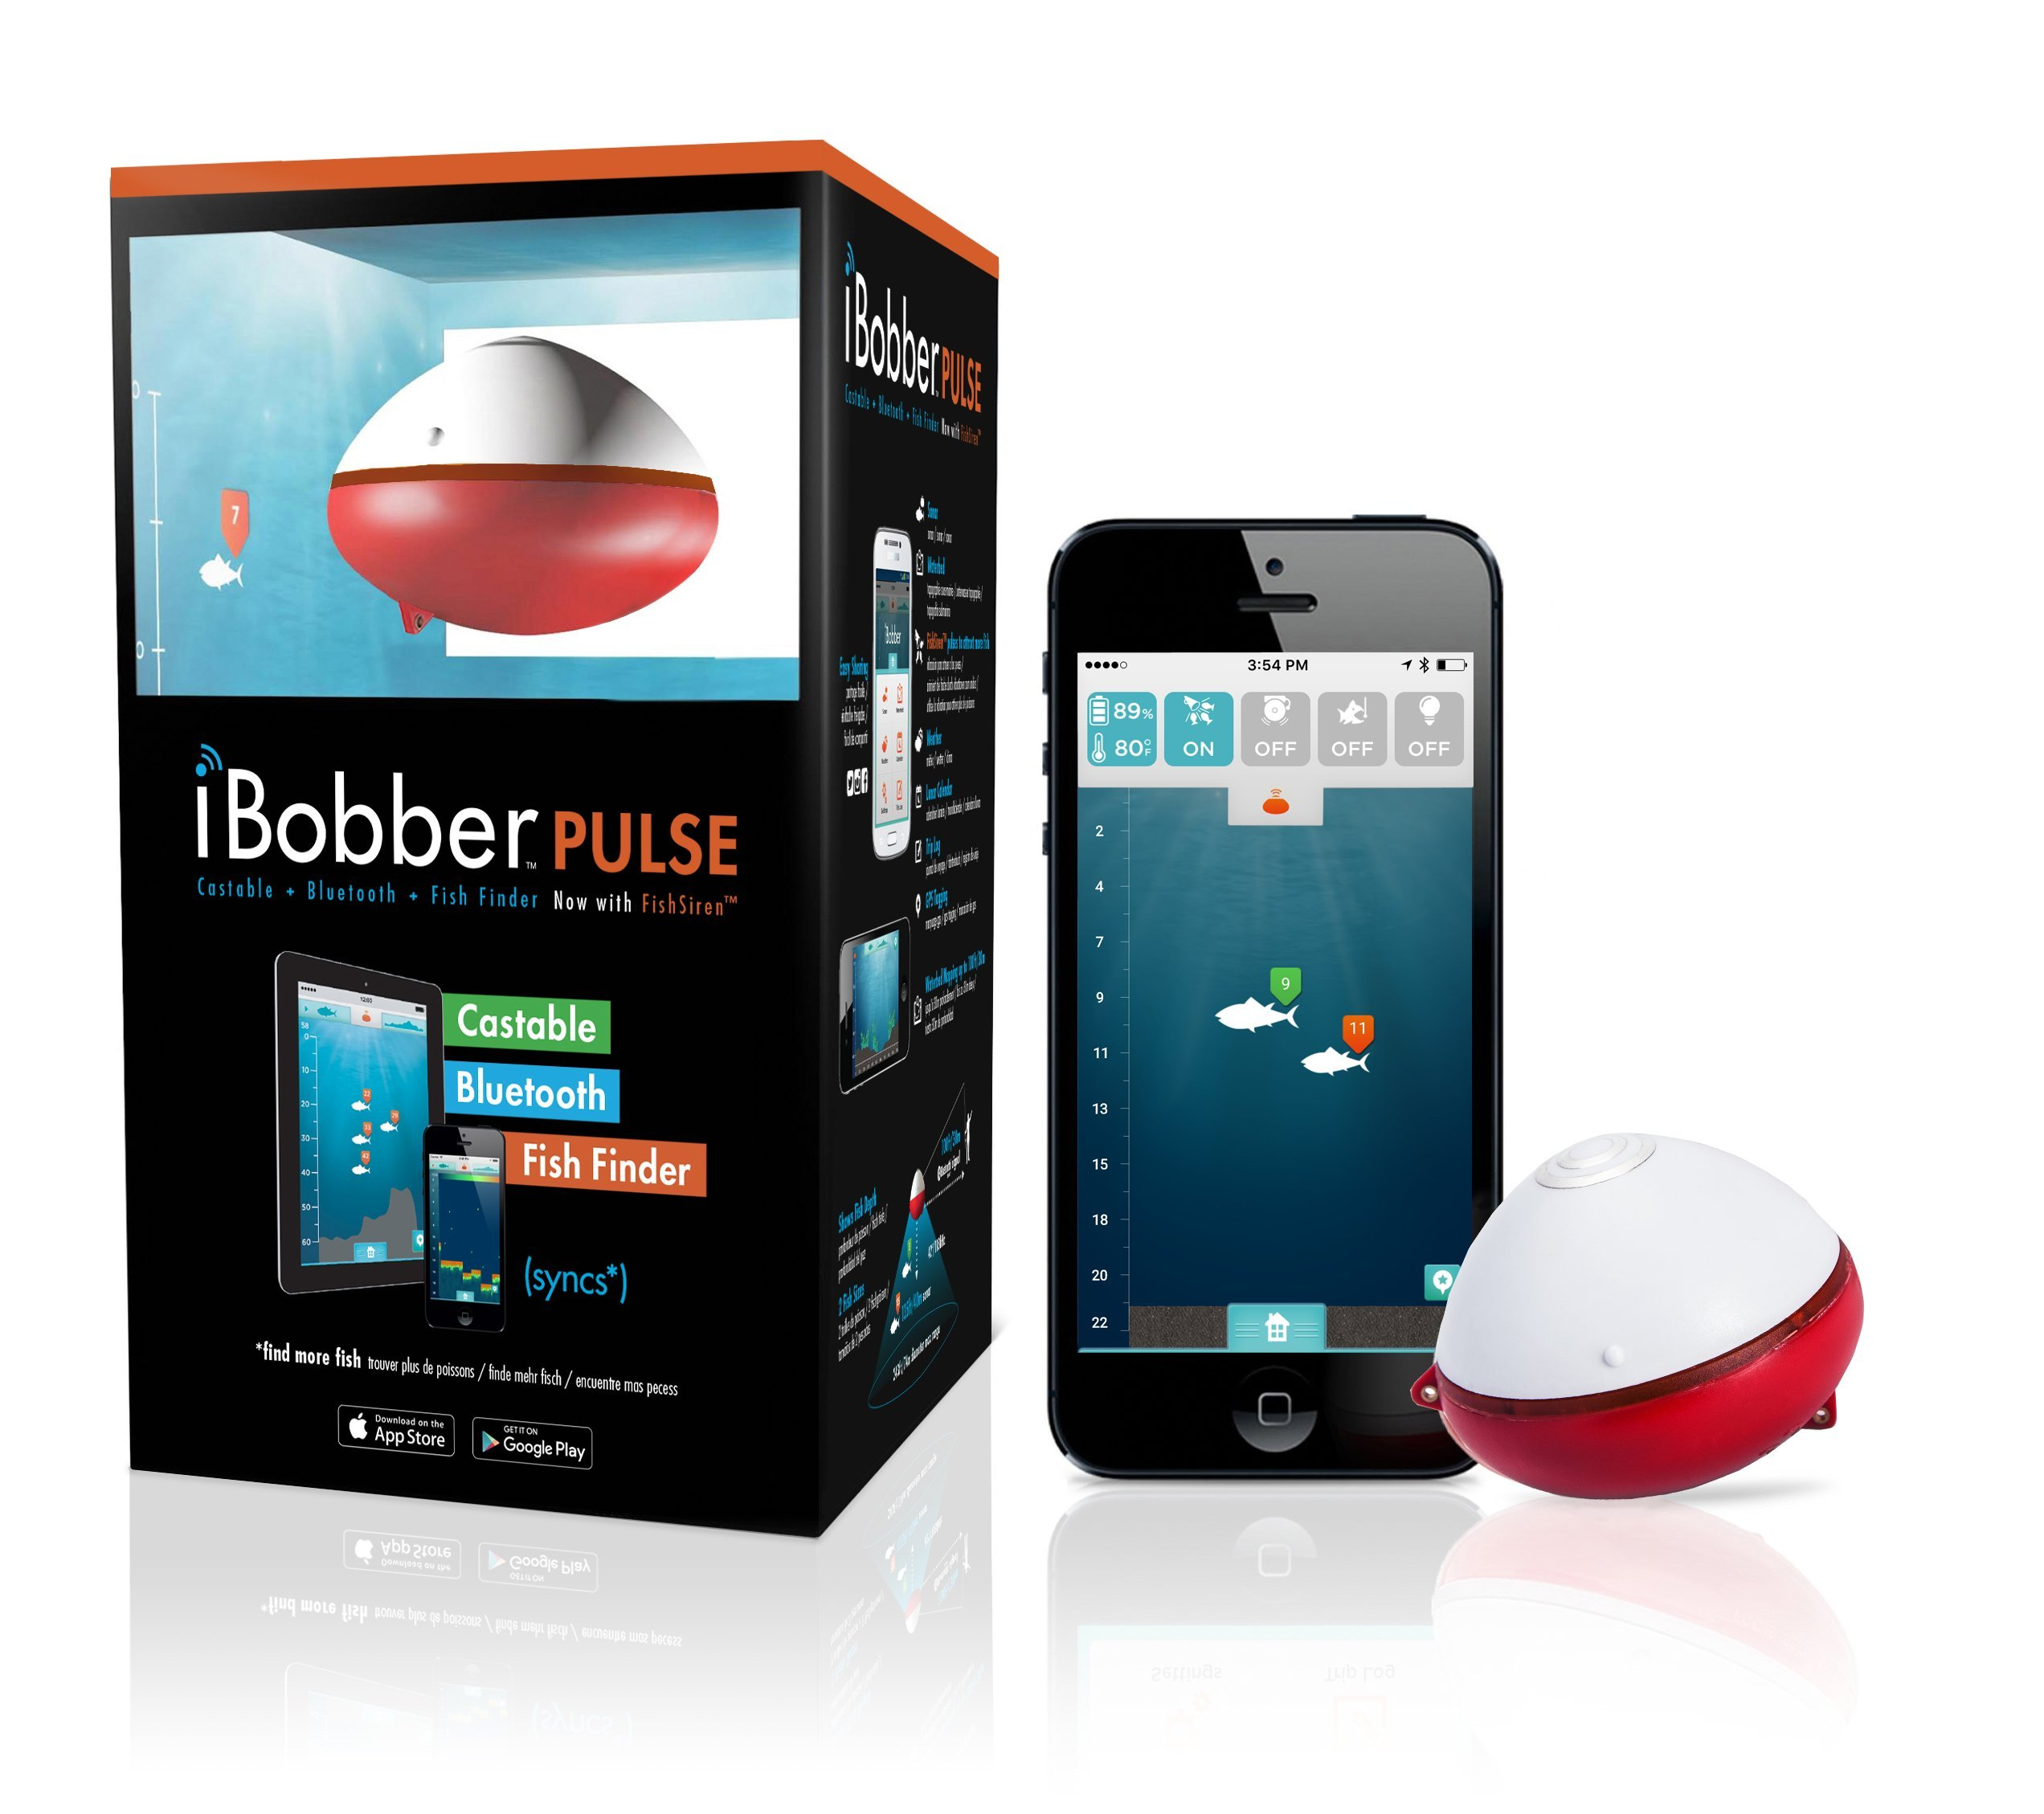 iBobber Pulse with Fish Attractor Wireless Bluetooth Smart Fish Finder for iOS and Android devices by ReelSonar